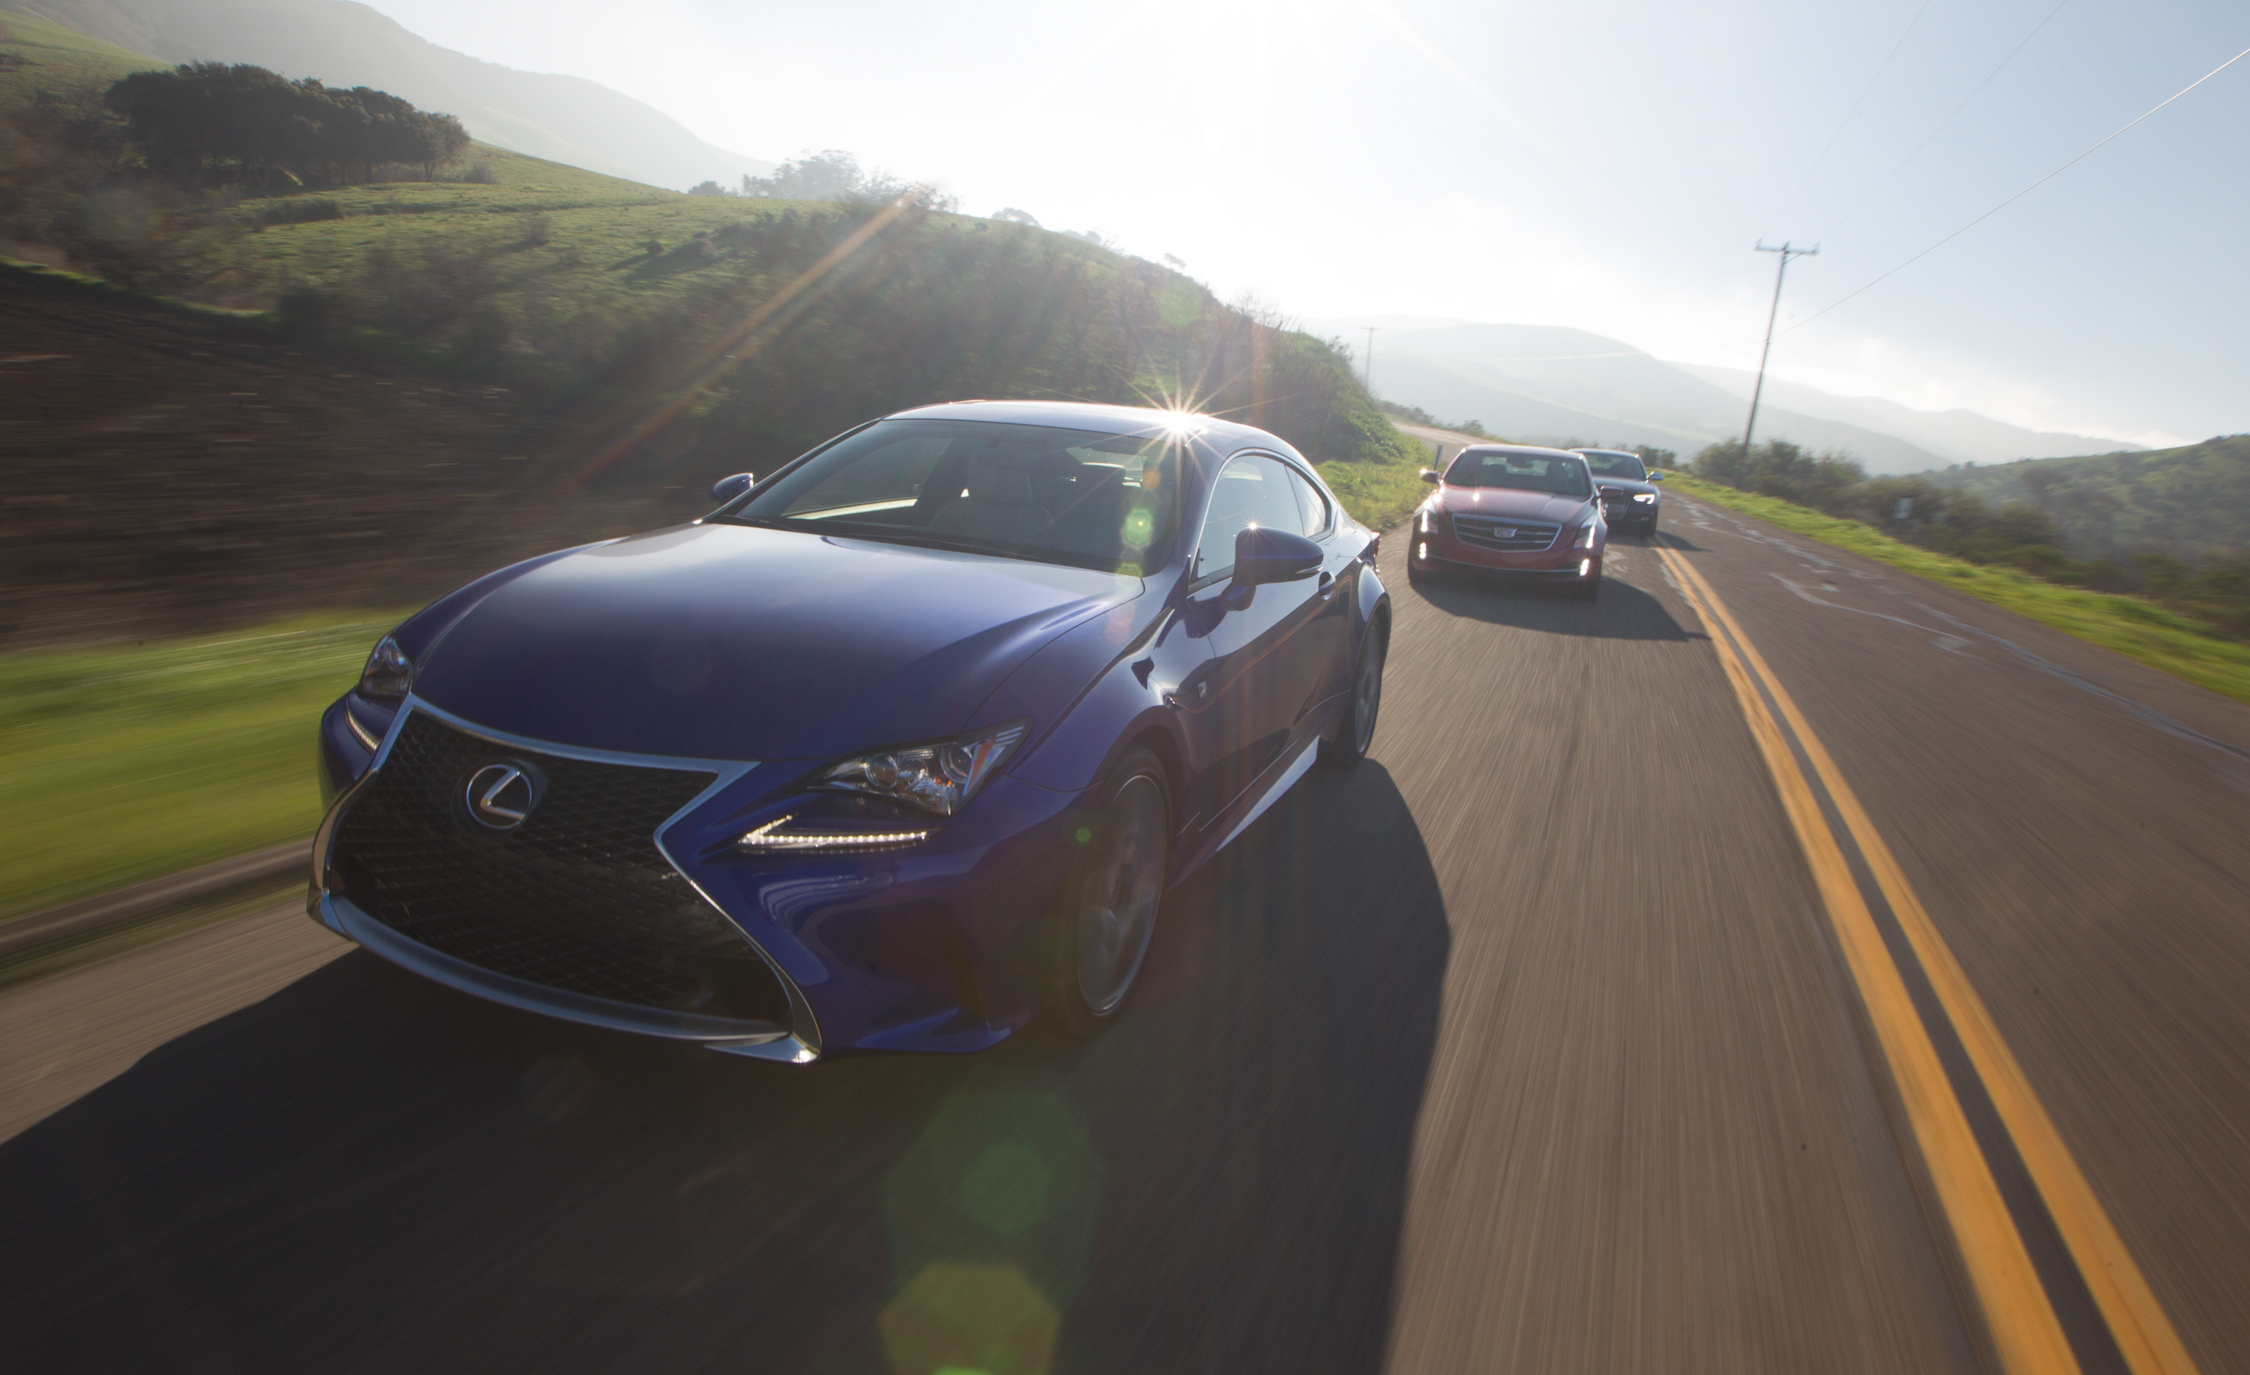 Comparison 2015 Lexus RC350 F vs 2015 Audi S5 vs 2015 Cadillac ATS Coupe 3.6